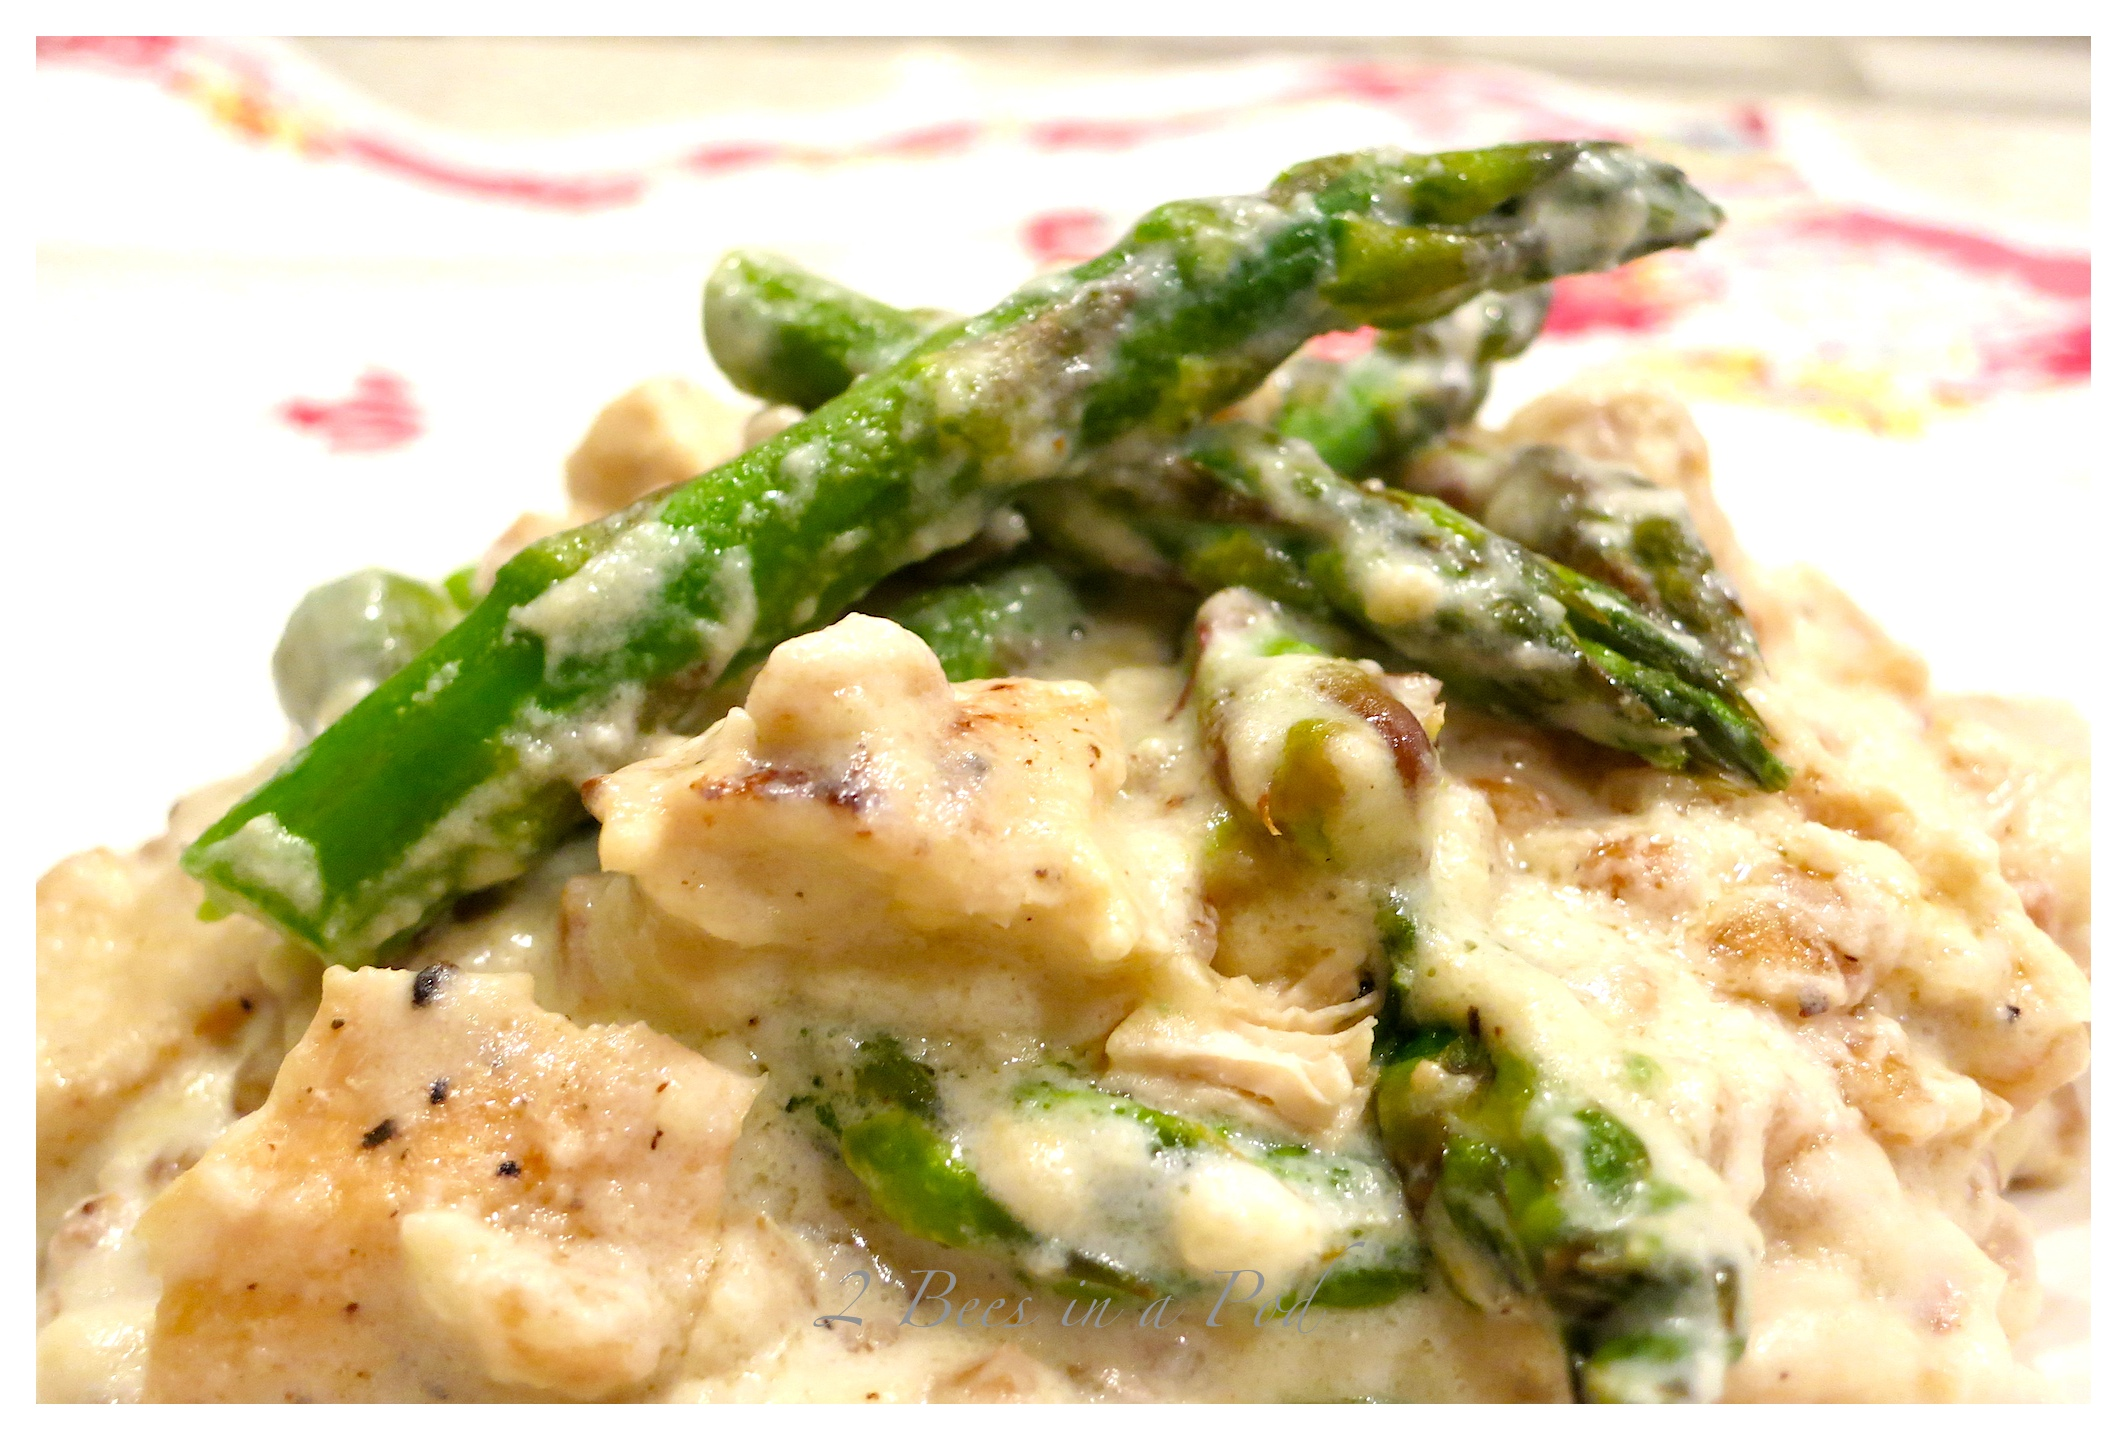 Yummy Creamy pecorino chicken farro risotto and asparagus.A complete meal in one dish!